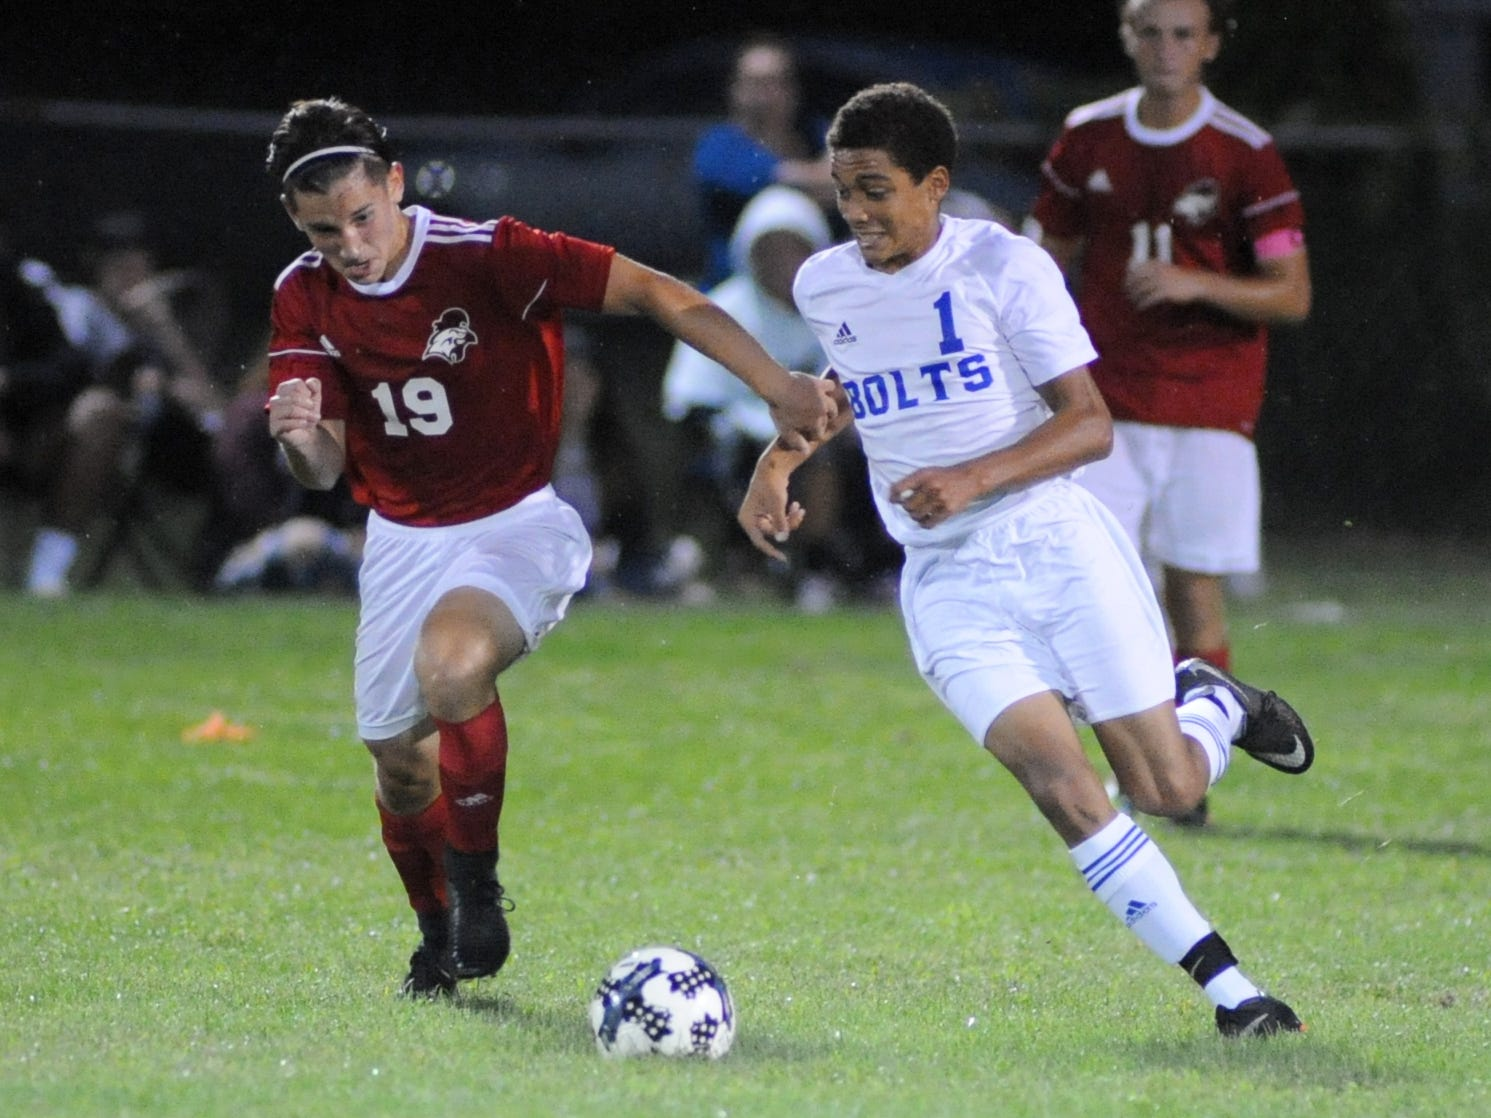 Vineland's David Singer and Millville's Treshan Stevenson race to the ball during a boys soccer game at Romano Sports Complex in Vineland, Monday, Sept. 17, 2018.